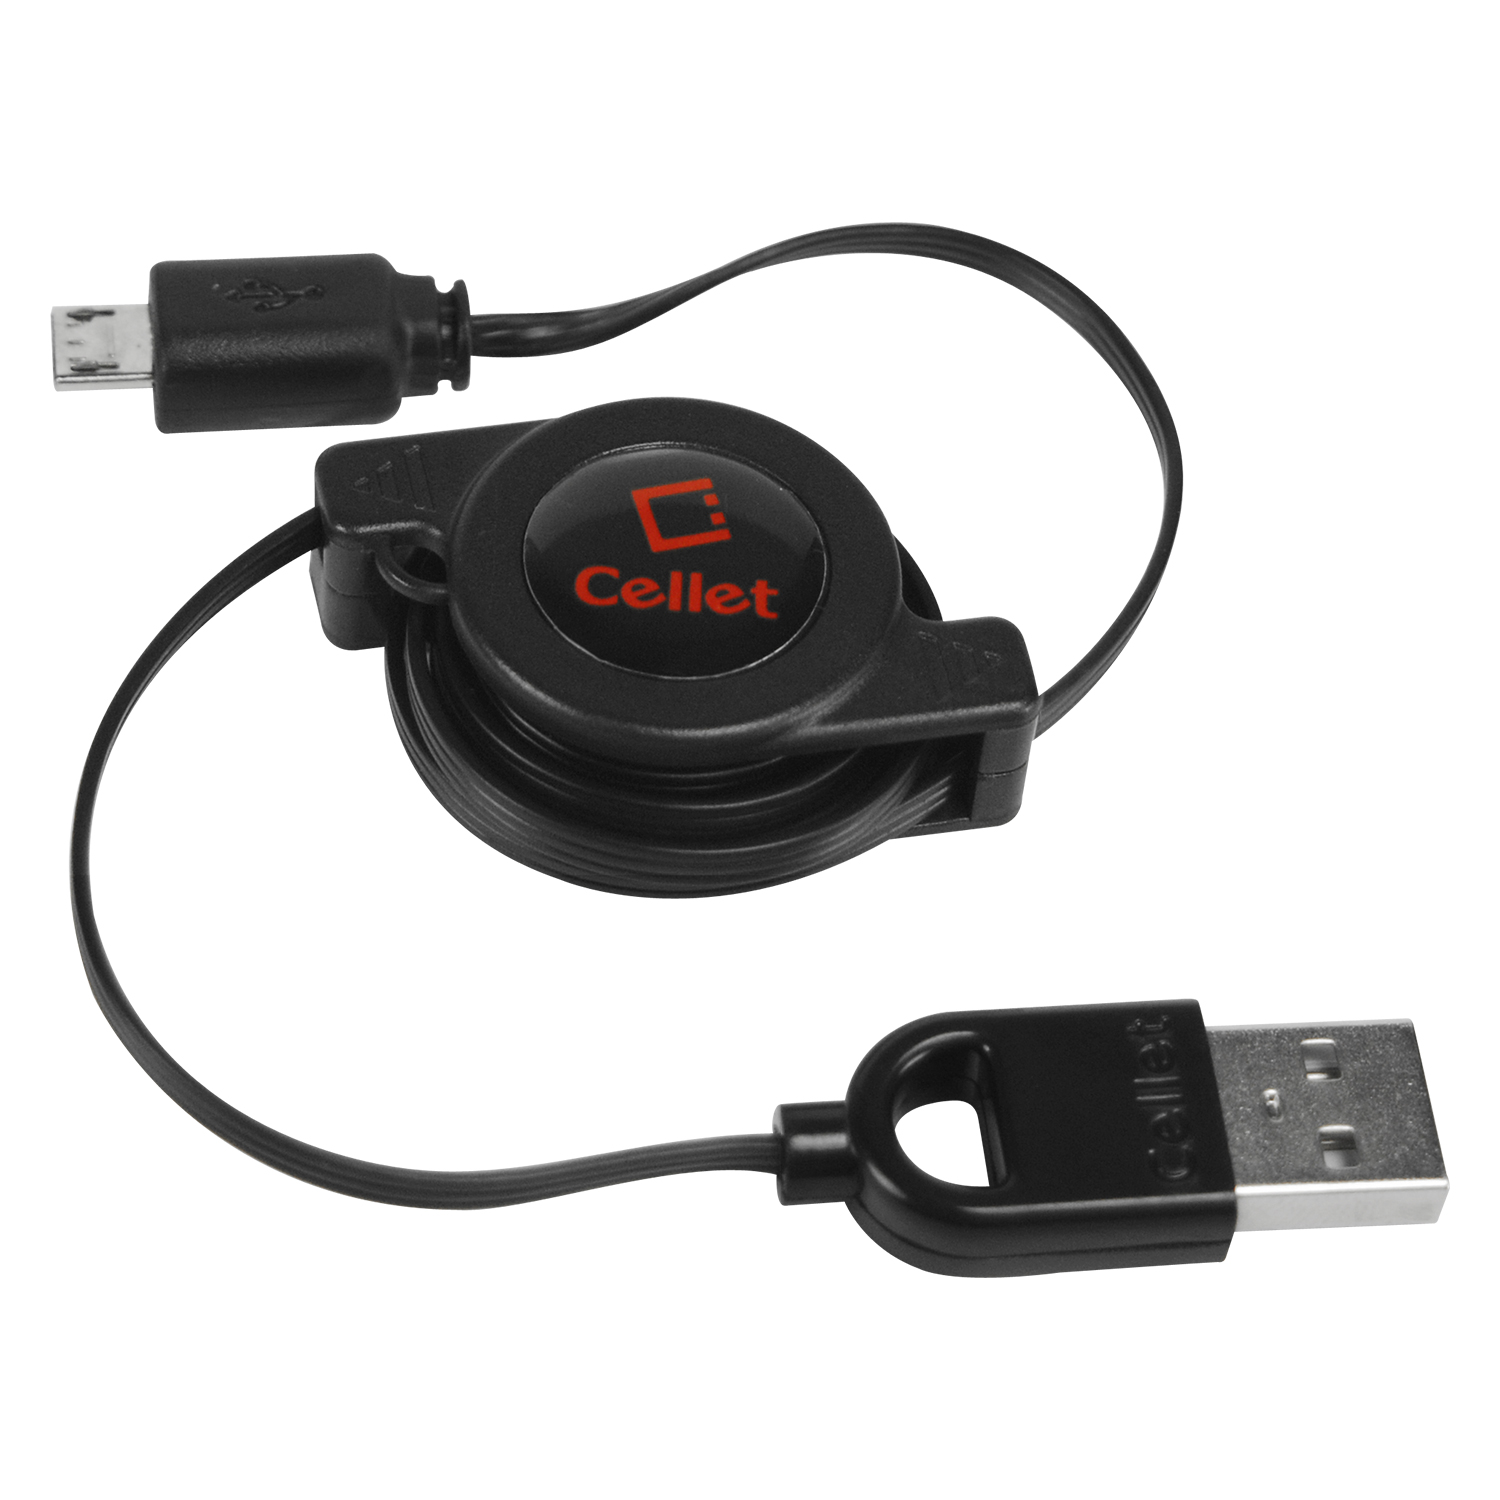 Cellet microUSB Retractable Charger and Data Cable (USB)